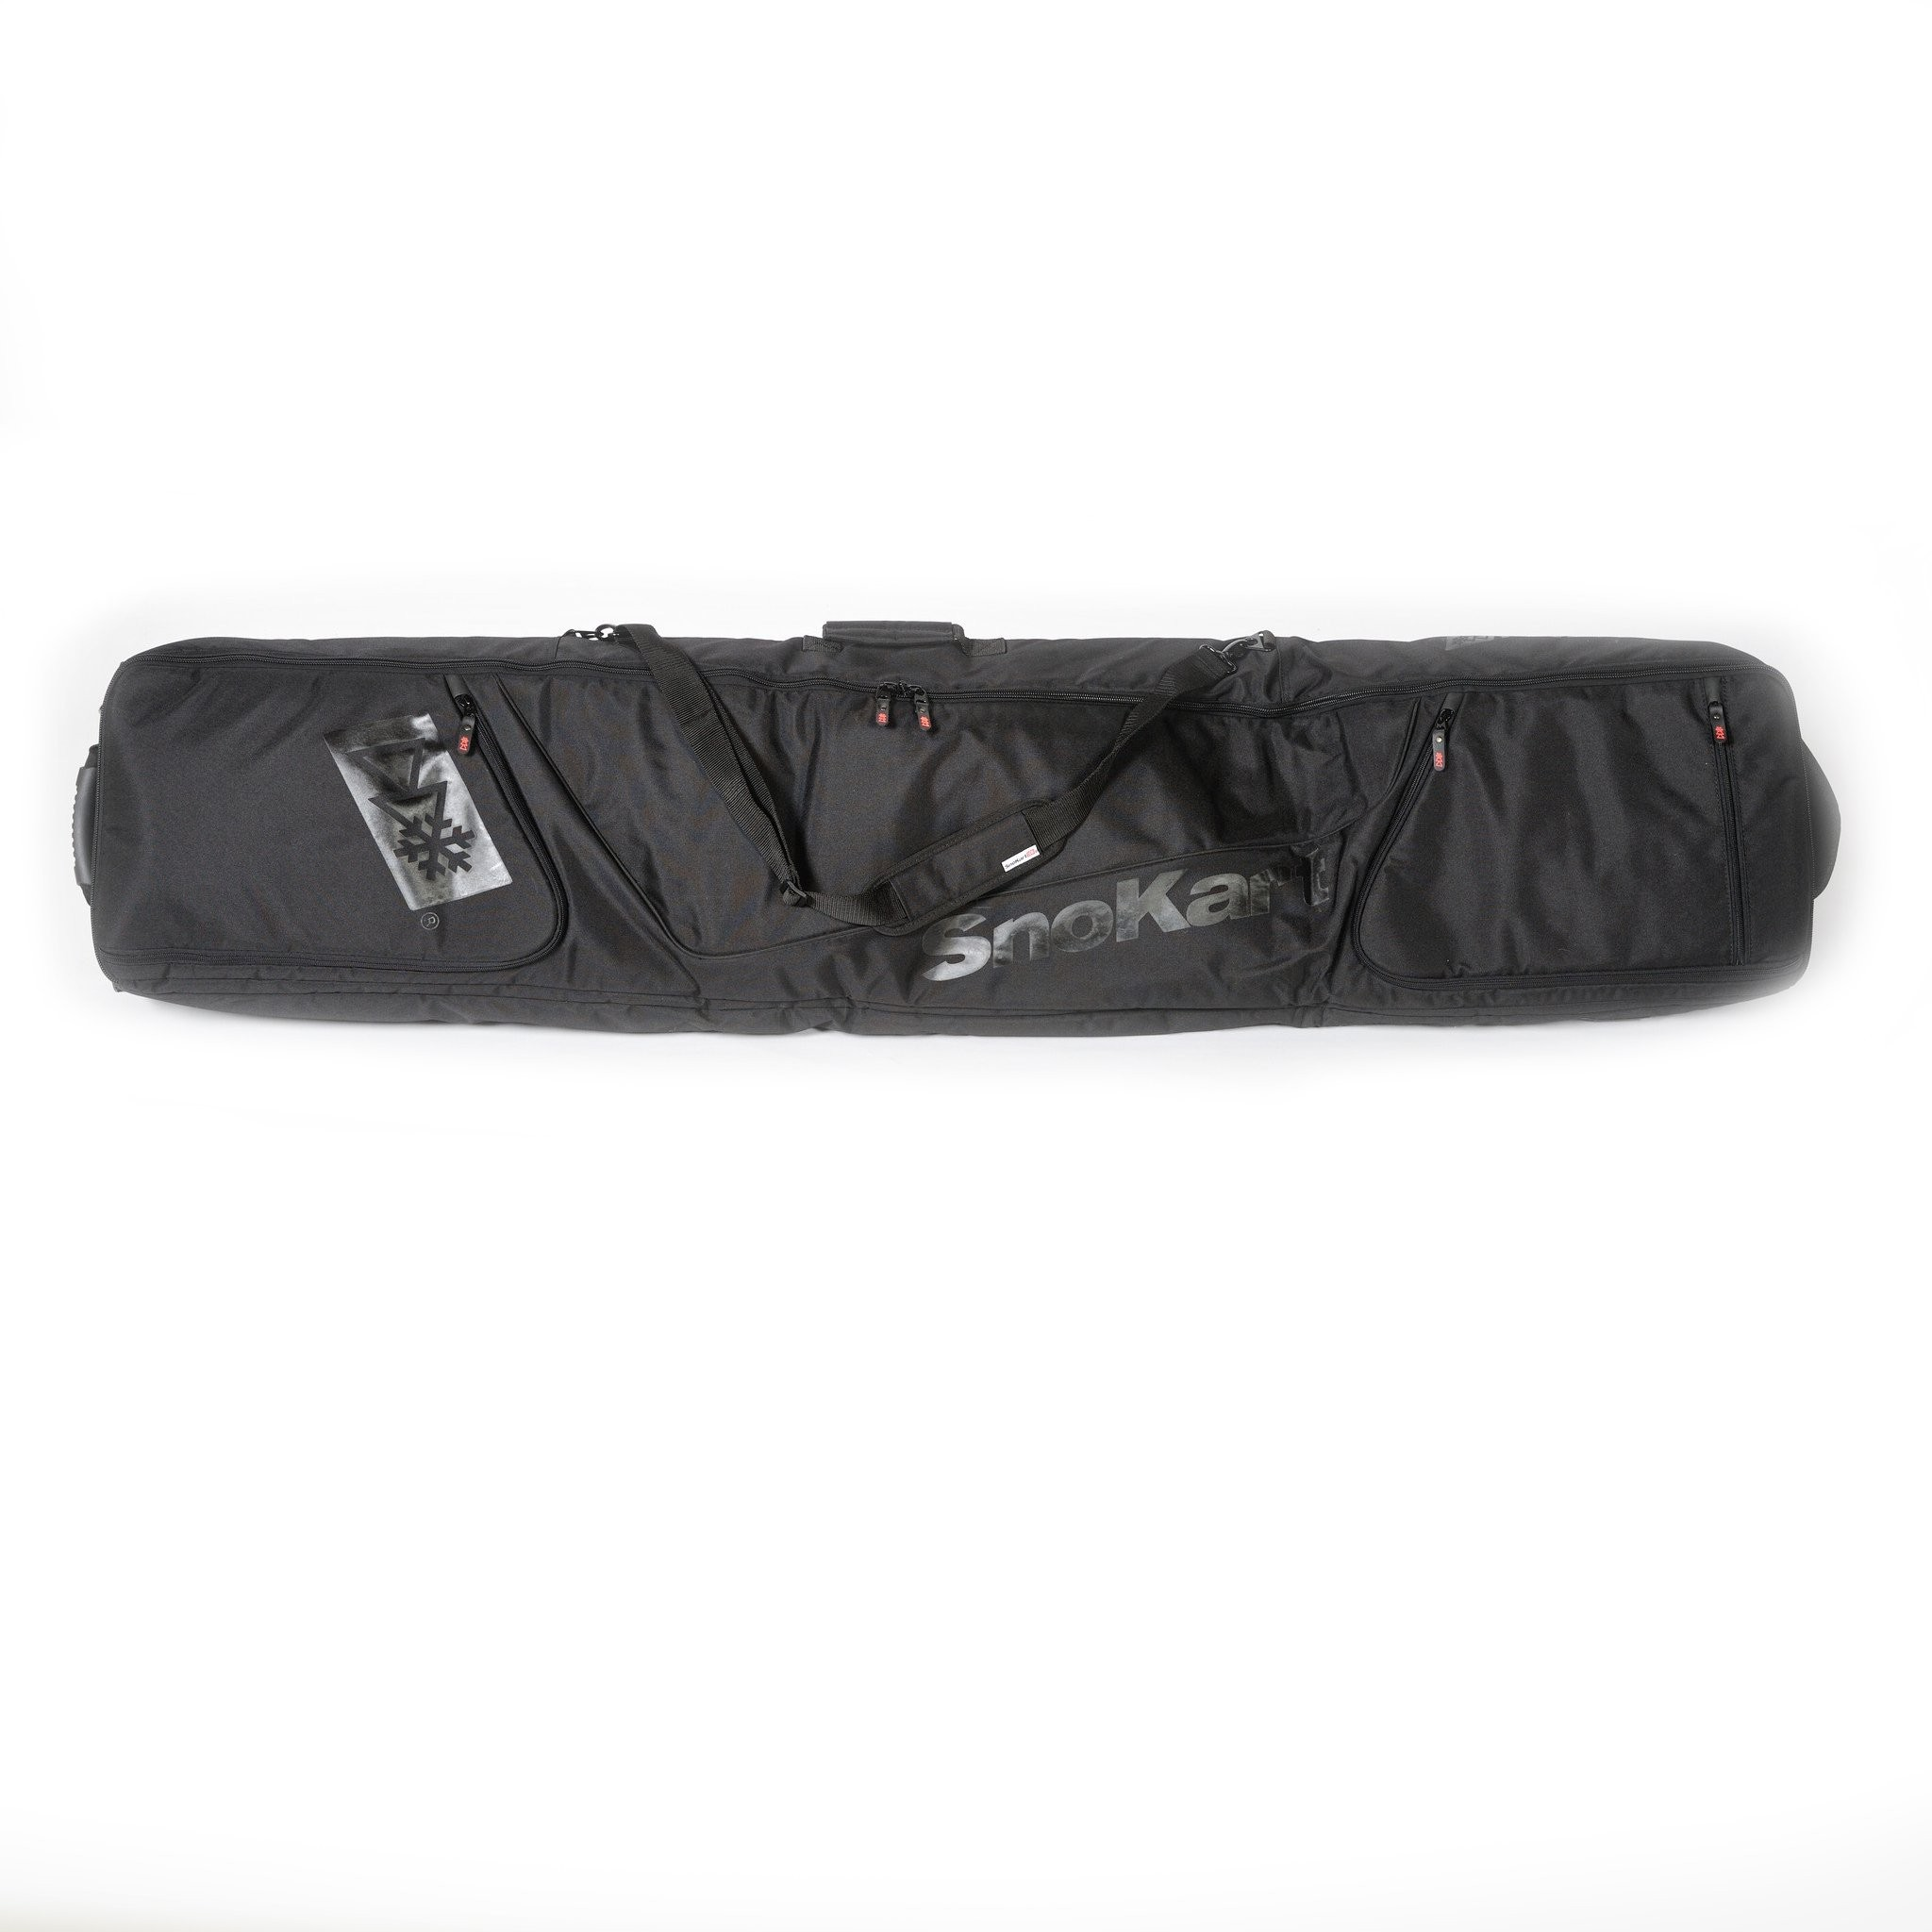 This well thought out bag offers you everything you need when taking all your snowboarding gear away on holiday.